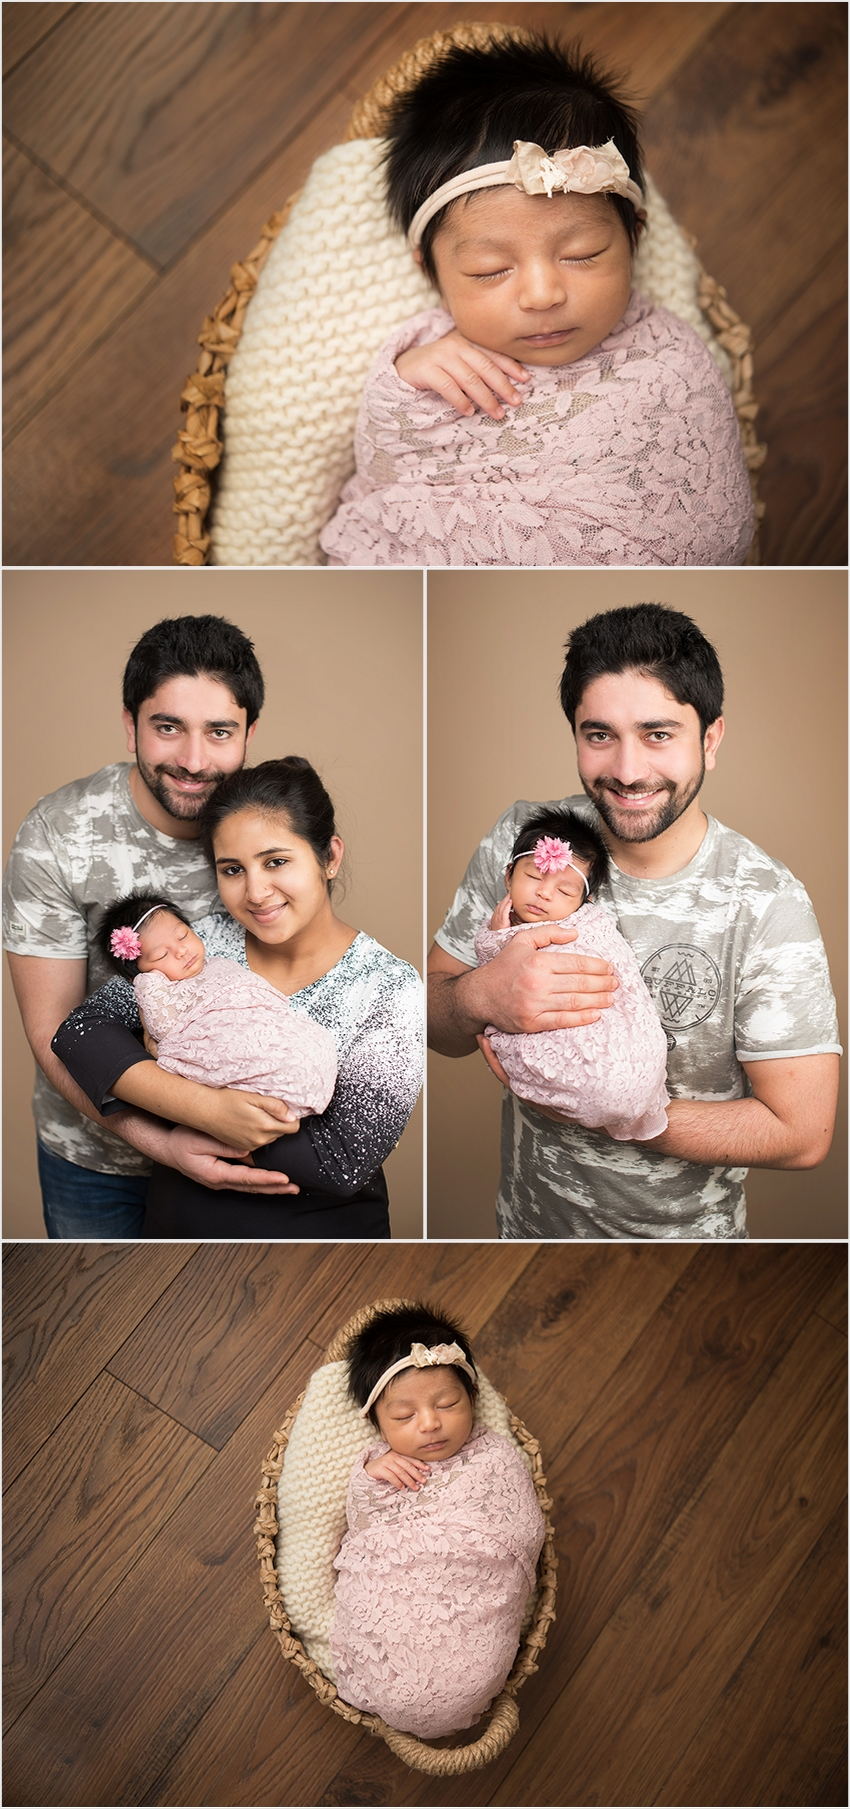 Abbotsford Newborn Photographer Newborn Photographer 001 (Side 1)